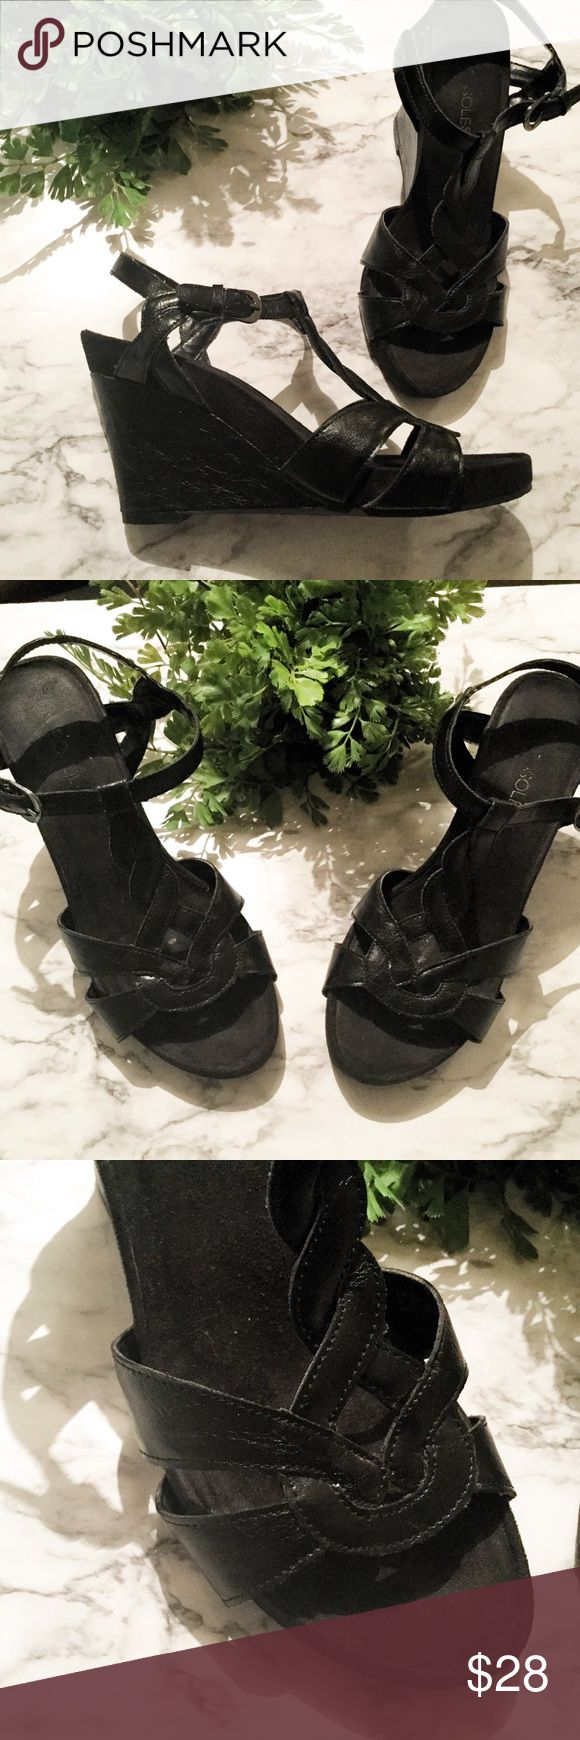 AEROSOLES Wedge Sandals Vegan Black Heels Boho 7 🍃 Solid black Aerosoles wedges. These sandals are a women's size 7. Foot bed is super soft and comfortable......feels like suede. T strap criss cross design. Adjustable buckle on ankle strap.   🍃🍃🍃🍃🍃🍃🍃🍃🍃🍃🍃🍃  🌸 Man made upper 🌸 Photos show condition  🌸  Boho, vegan, festival, pool party, date night, wedding, cruise  💕 Offers welcome 💕 AEROSOLES Shoes